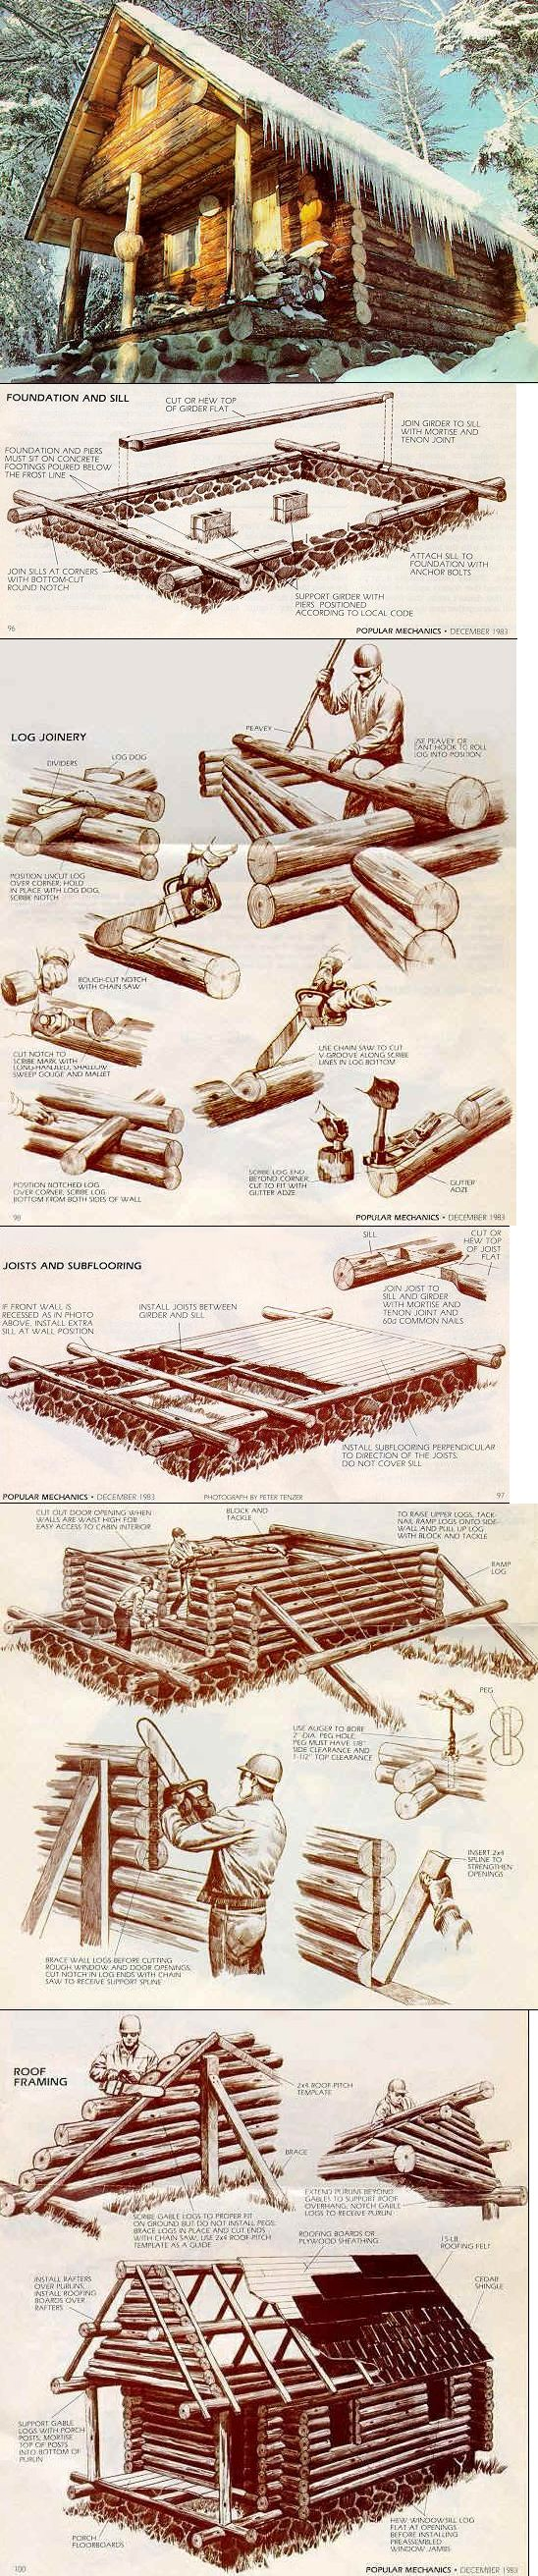 How to build a log cabin - from Popular Mechanics.  Because I would love to have a little log cabin instead of a metal storage shed!!! #LogCabinHomes